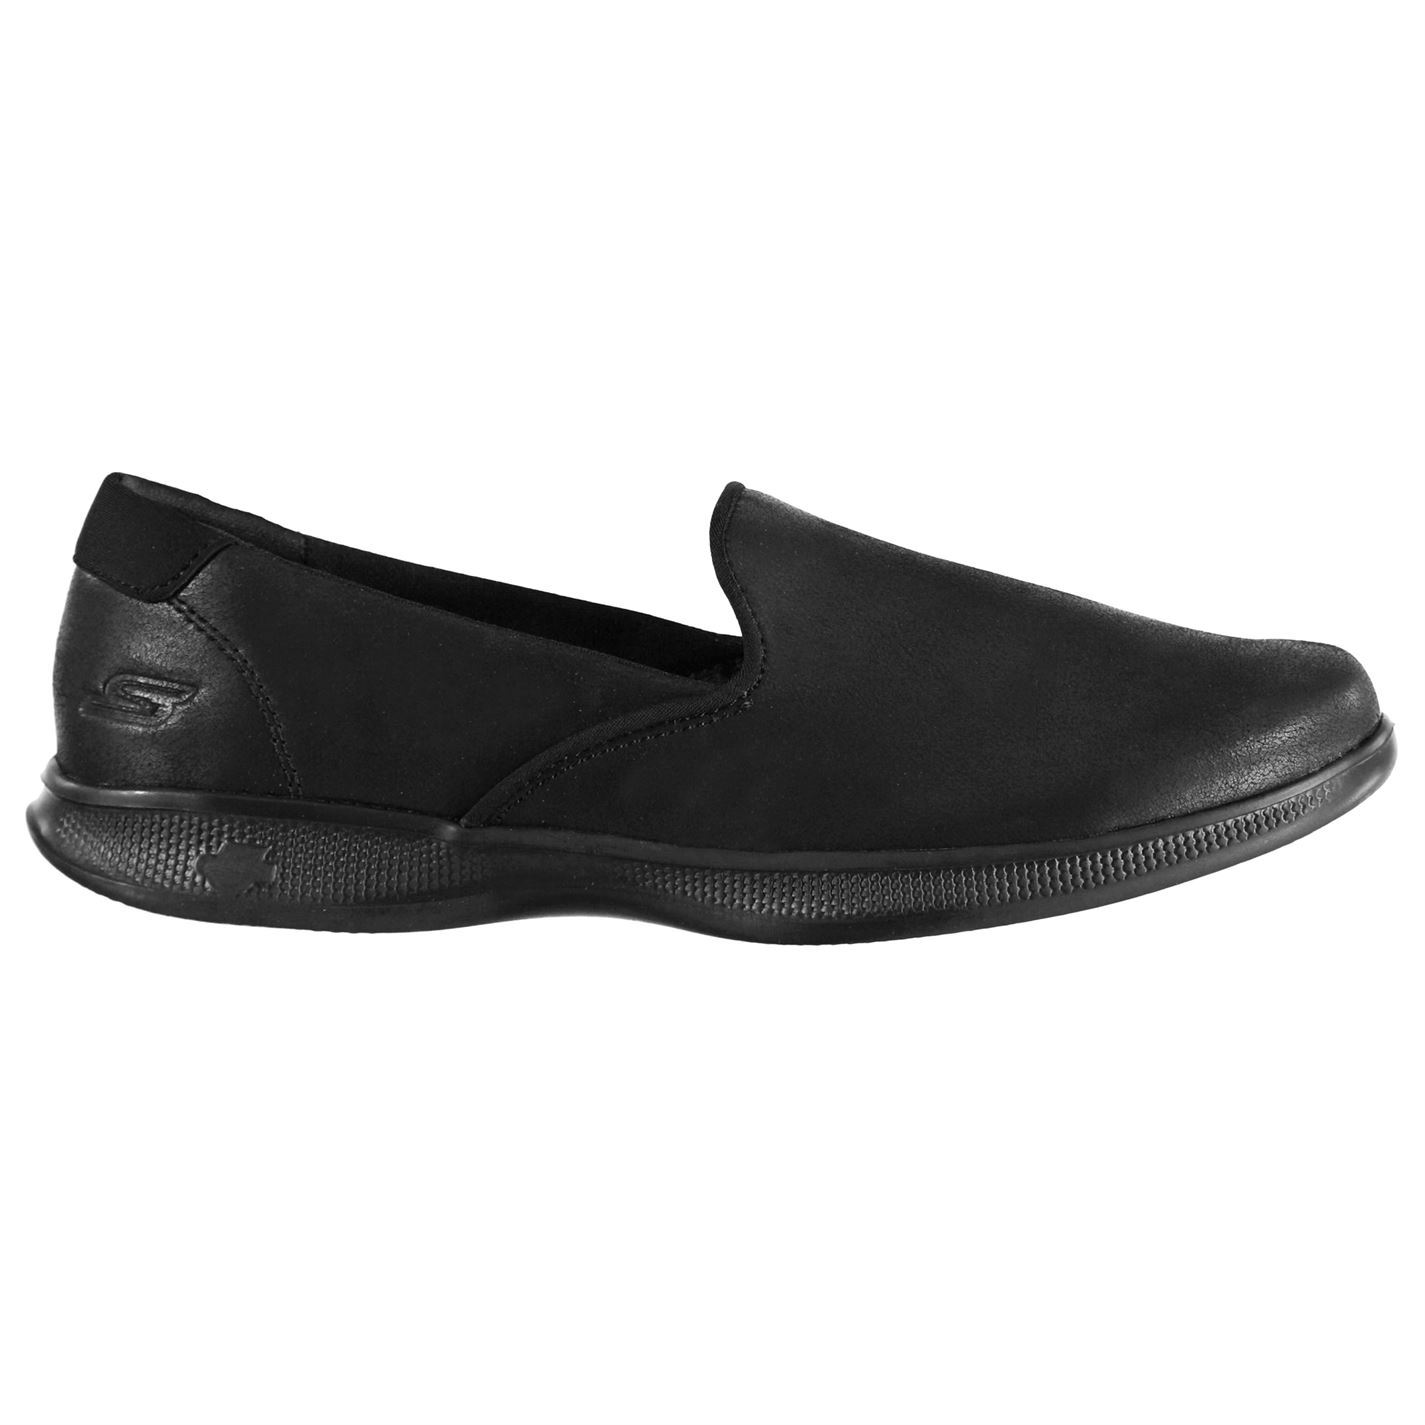 Skechers Damenschuhe GoStep Lite Leder Determined Schuhes Slip On Trainers Leder Lite Upper 75f4fe